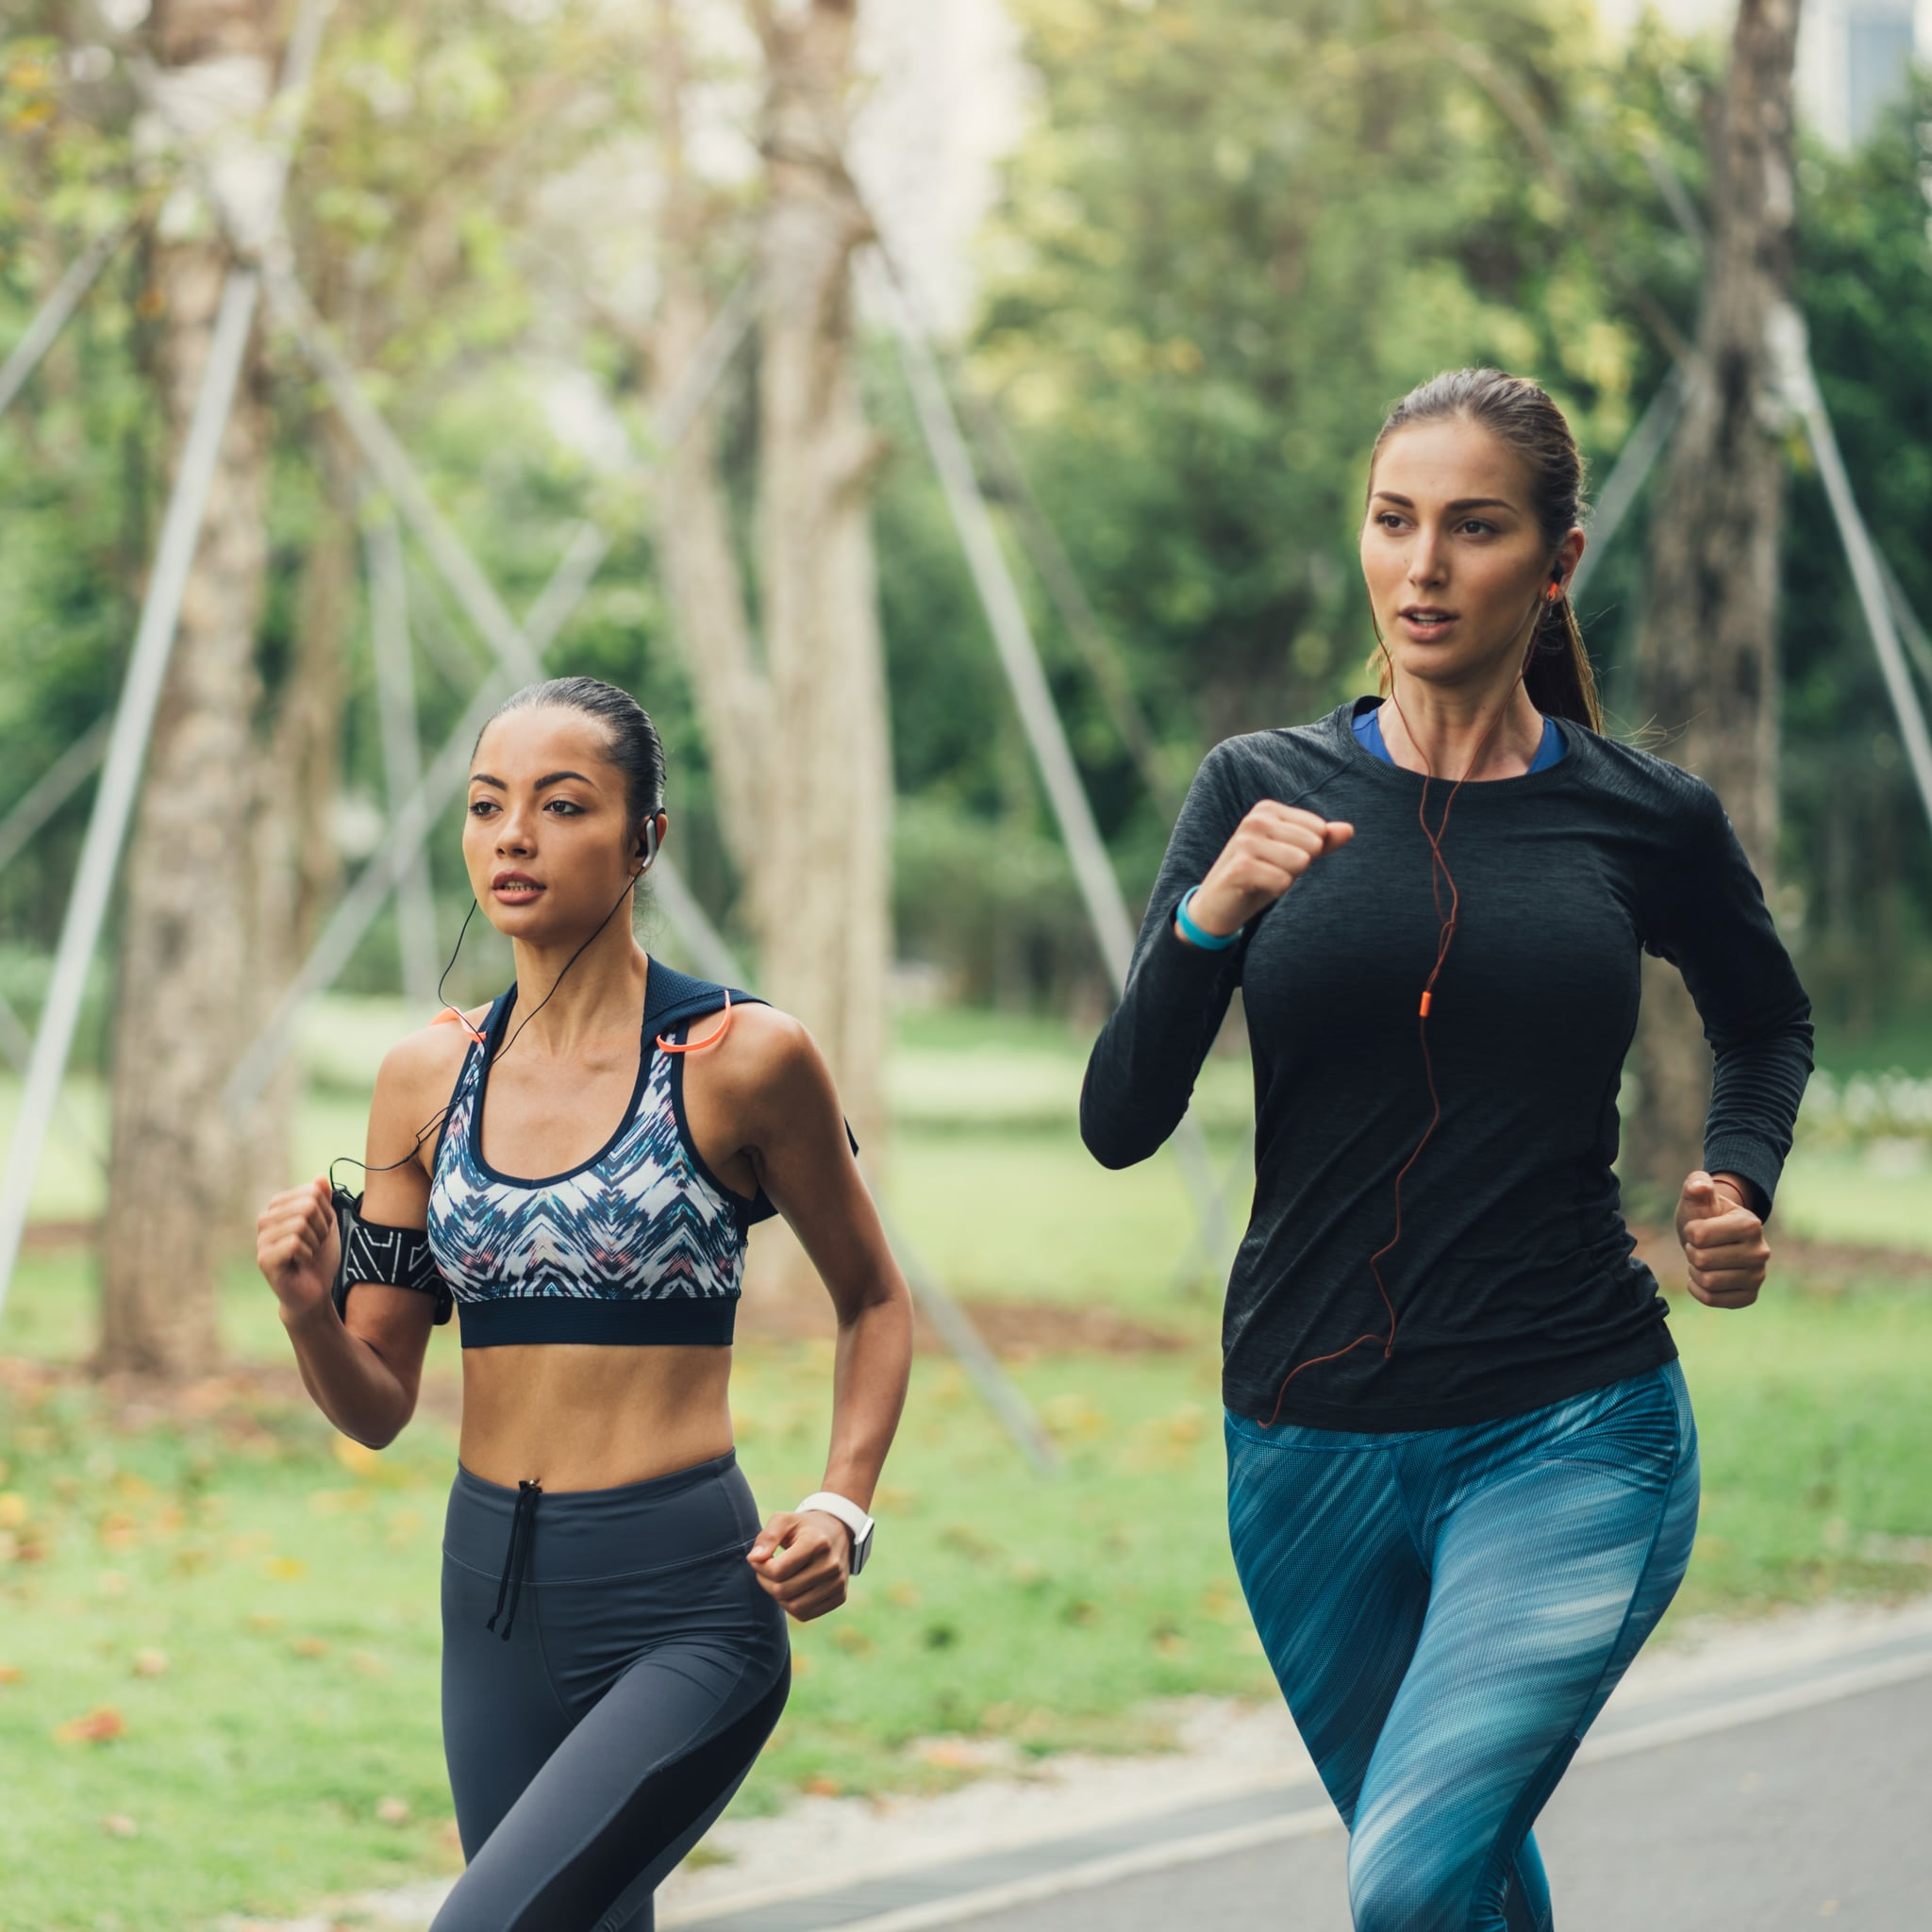 how can i lose weight running